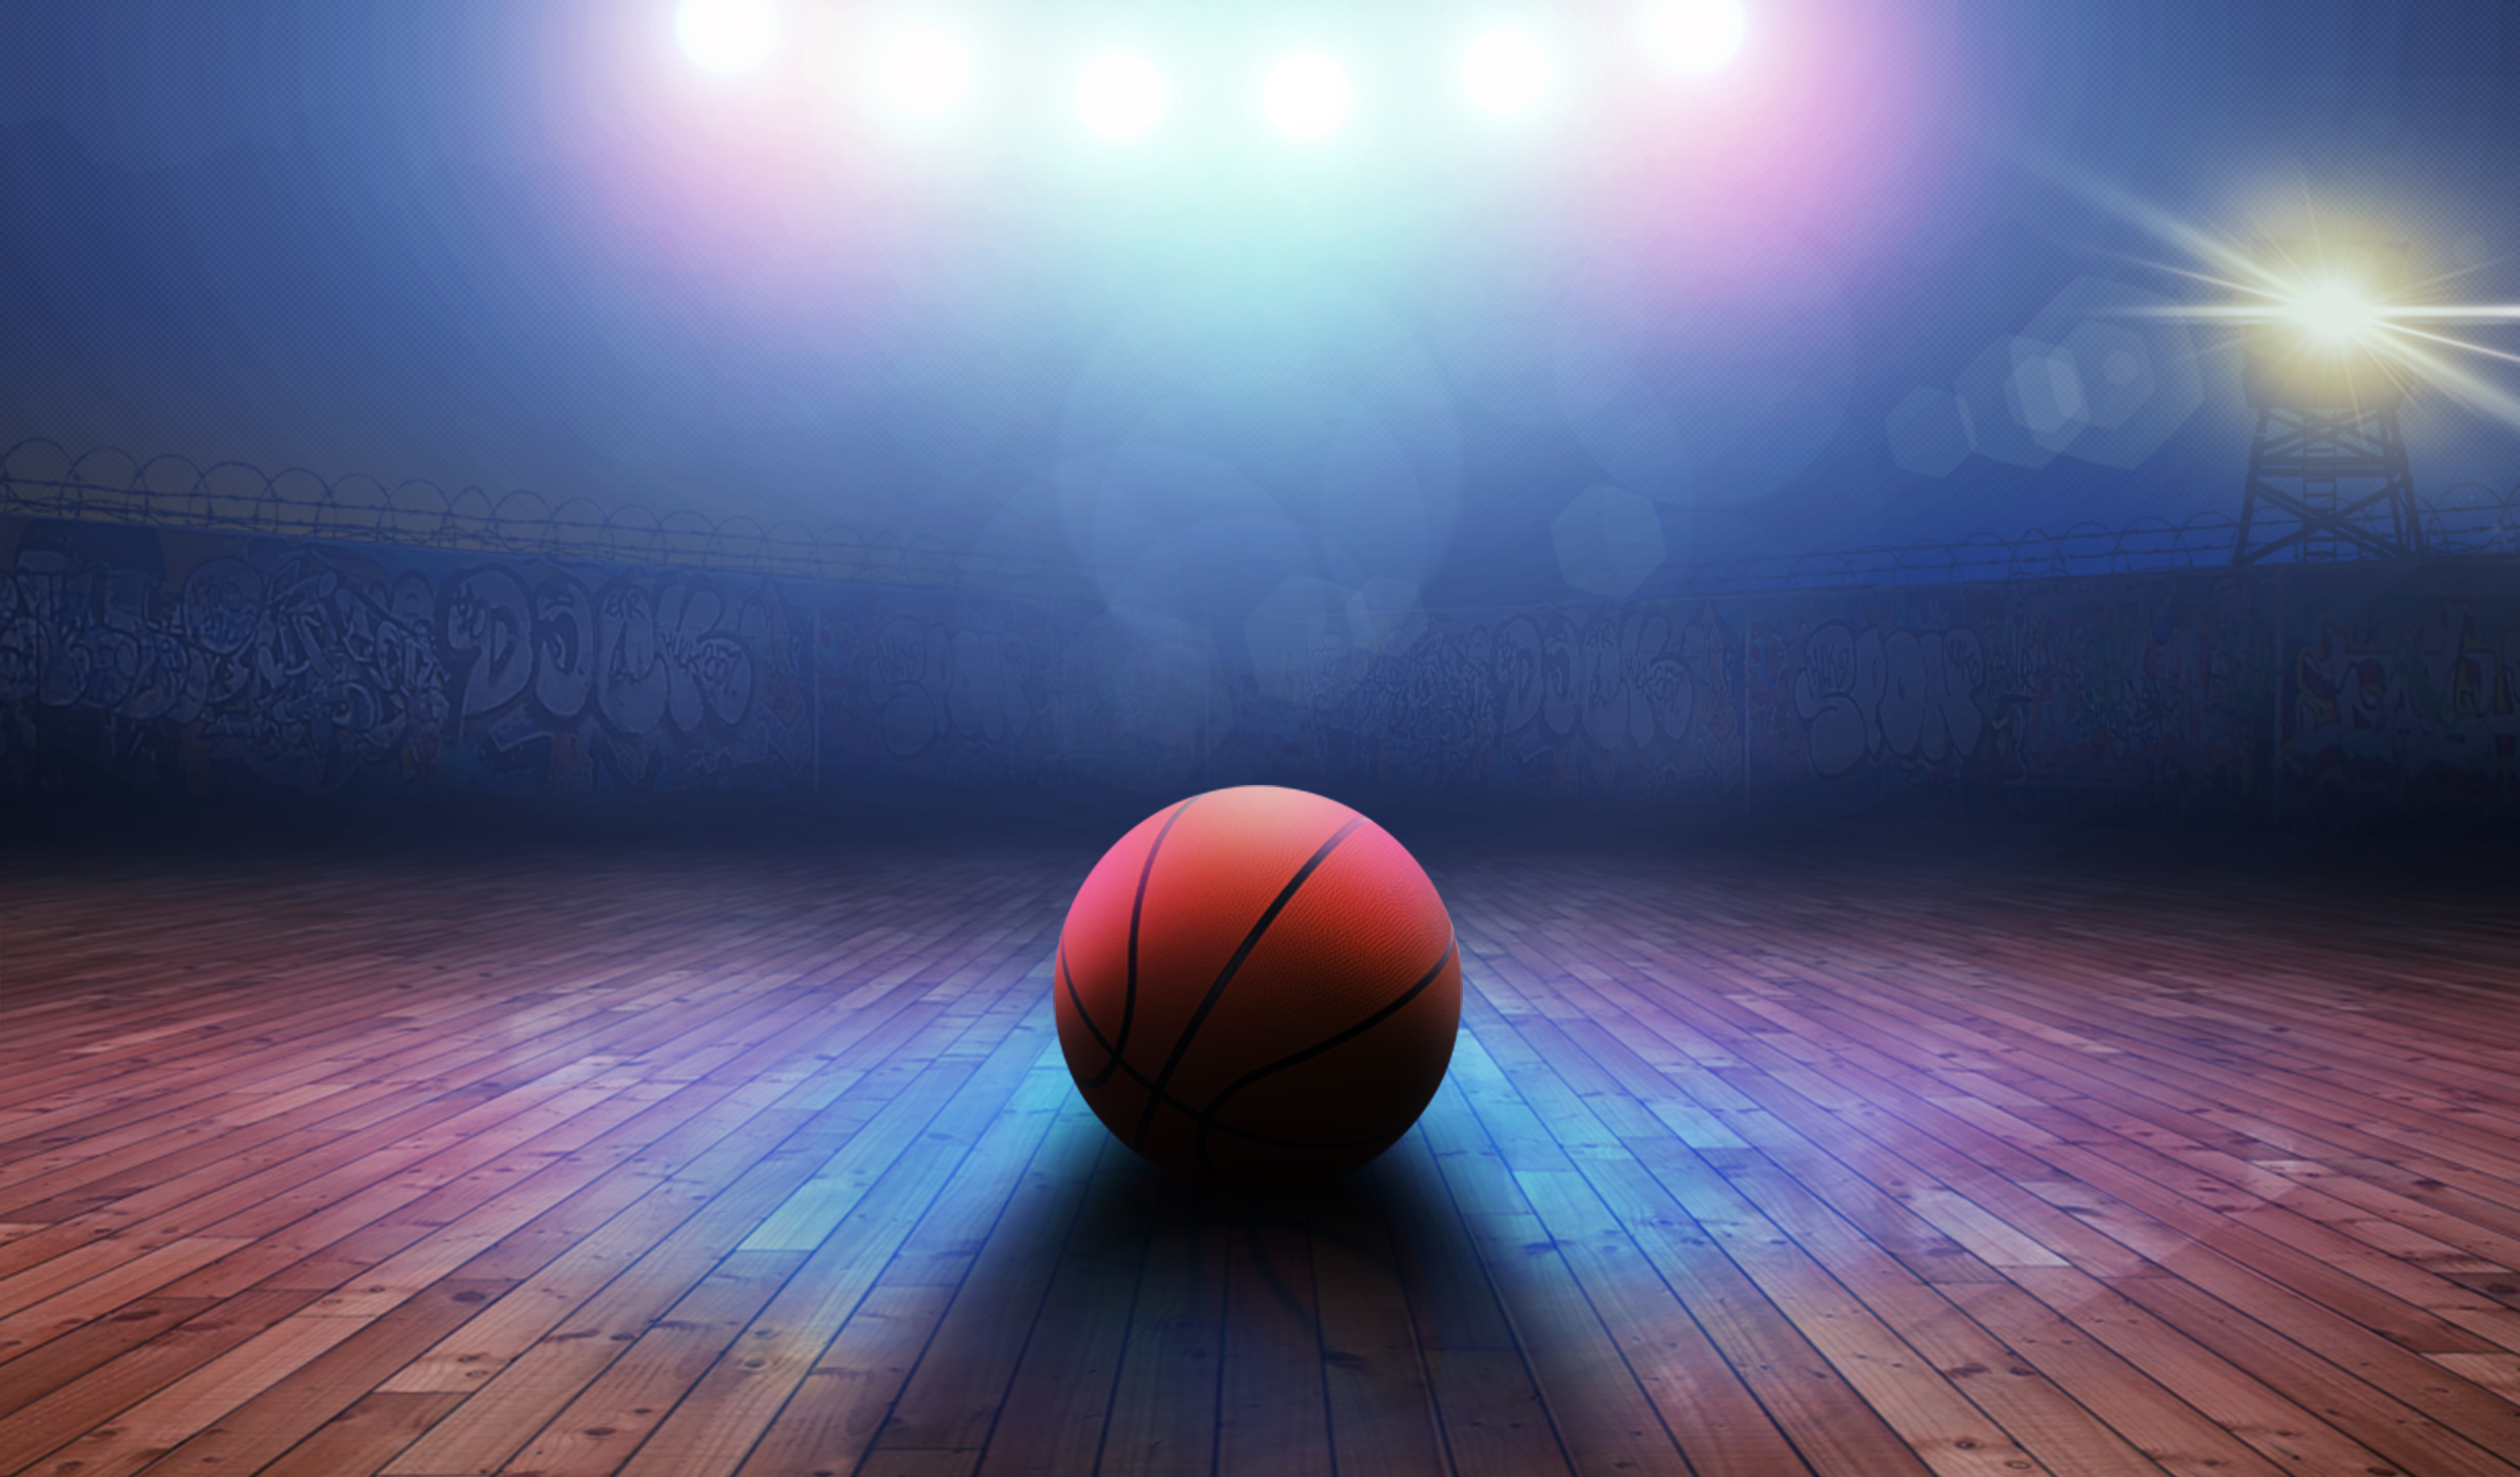 simple basketball poster background  simple  basketball  court background image for free download